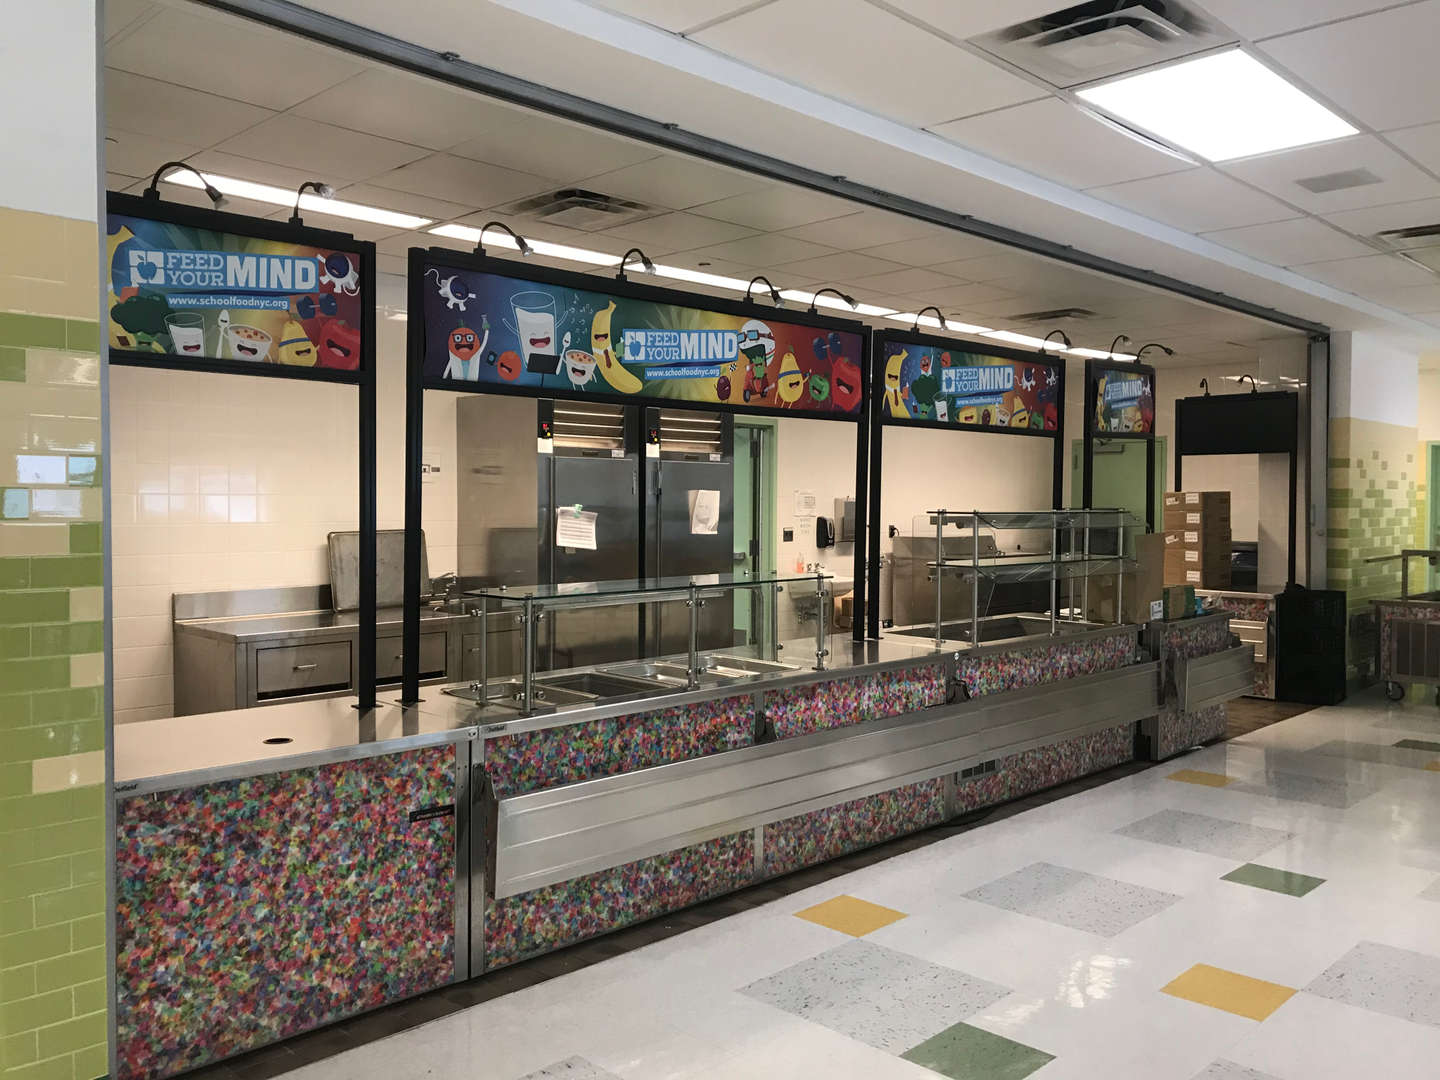 School cafeteria food station.